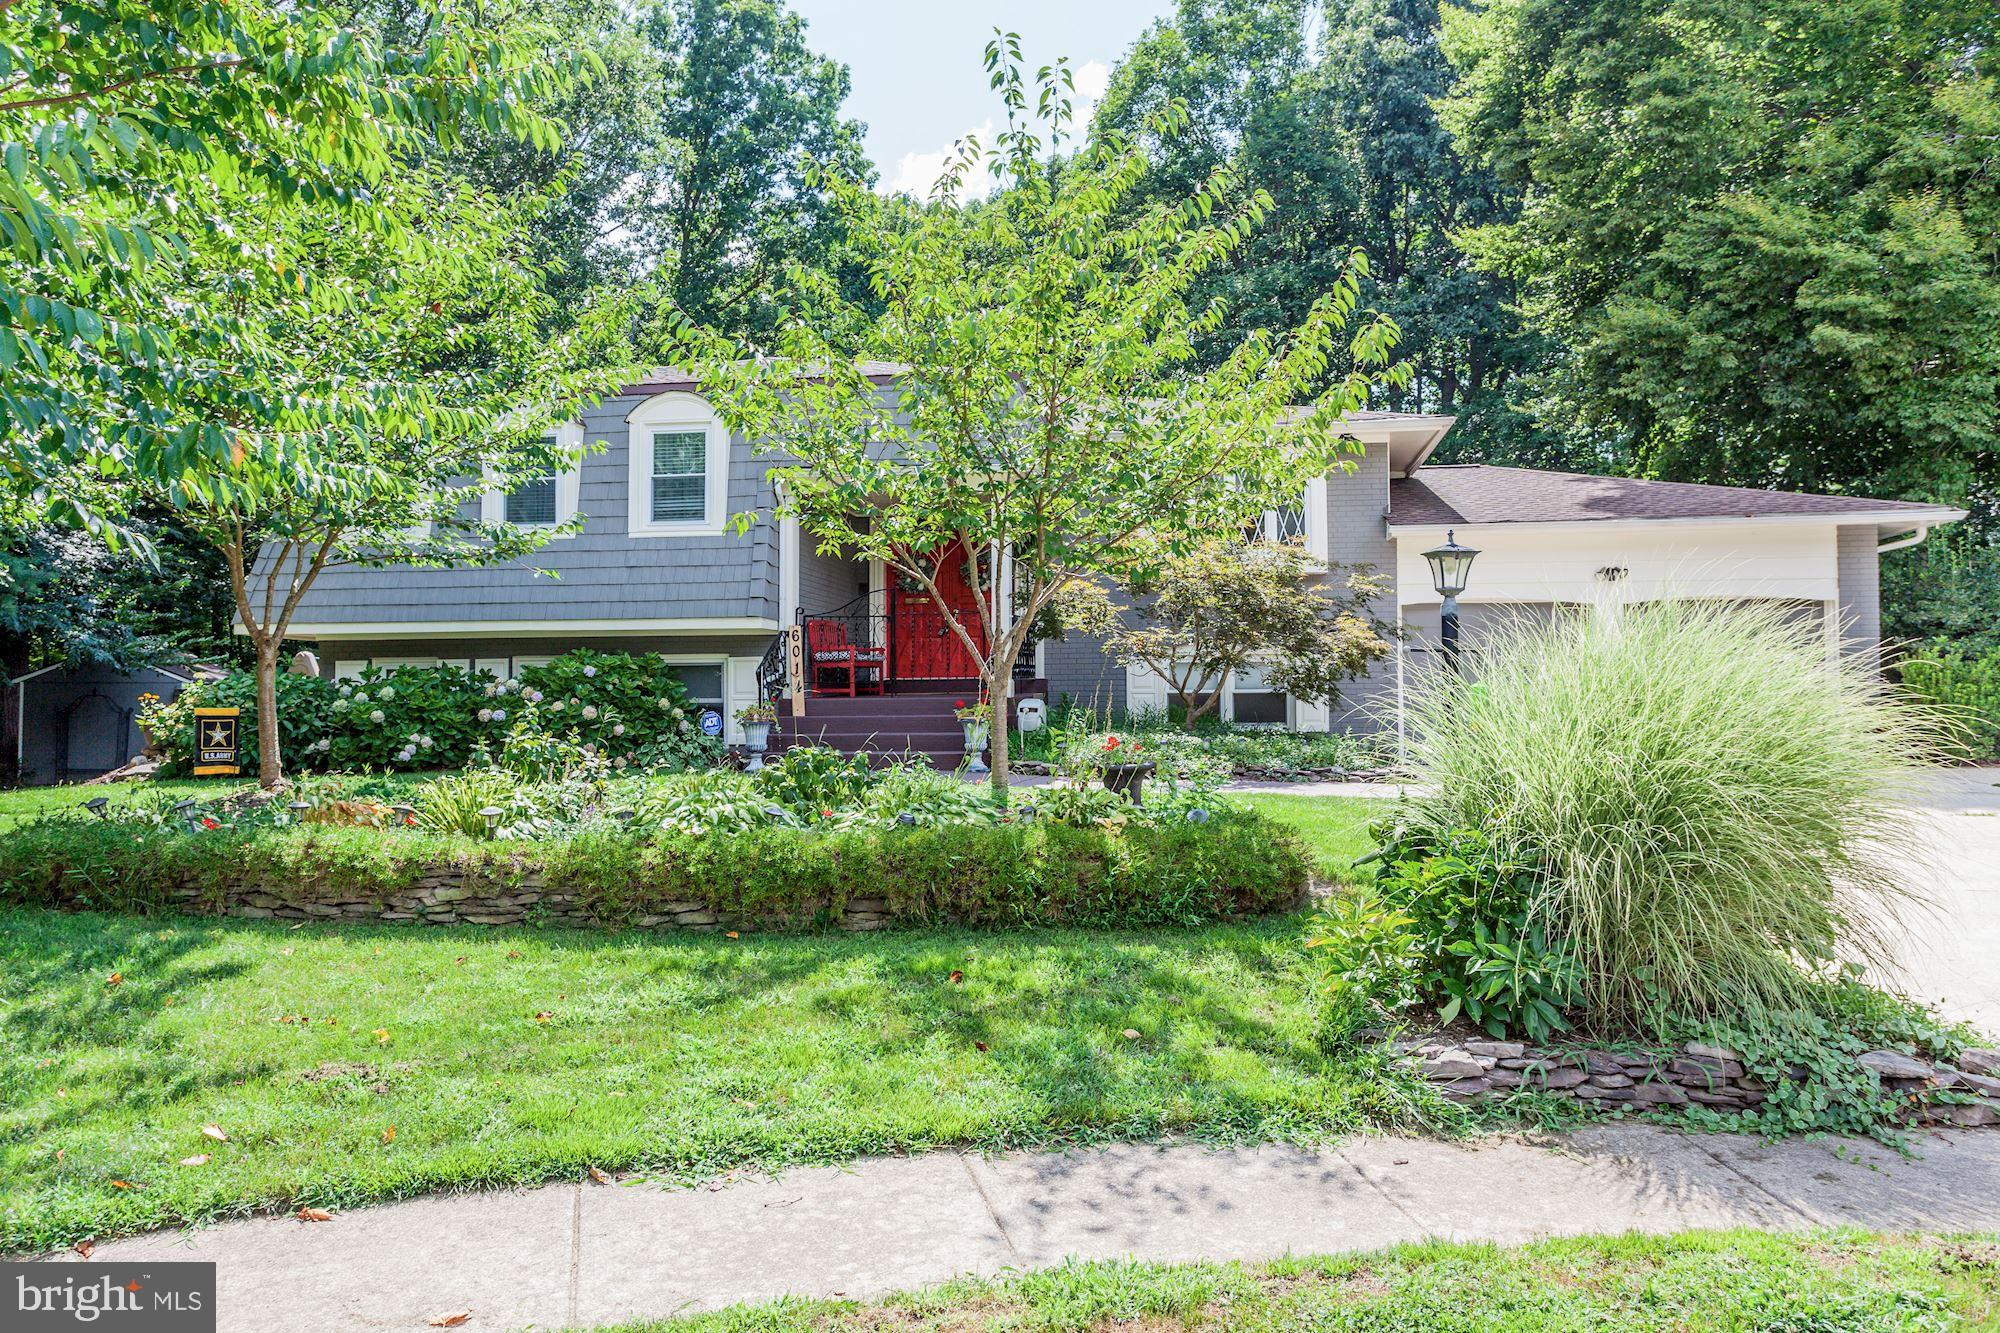 Welcome home to this stunning split-level on a secluded cul-de-sac in West Springfield. Enjoy the great outdoor space with a large deck & patio that overlook a sparkling in-ground pool.  This private oasis overlooks a serene wooded setting complete with a creek bordering the property. The eat-in kitchen has ALL NEW stainless steel appliances, & opens to a formal dining room.  Custom crown molding and pristine hardwoods throughout main level spill into a large, light-filled sitting room. The spacious downstairs offers a large family room with a cozy, rock fireplace, and includes bonus space for a playroom and office. Both basement family room & large laundry room offer walk-out access to the backyard patio. Marble flooring takes you upstairs to the master suite, boasting his and her closets, along with a luxurious master bath with jetted spa tub. Upgrades include a NEW instant hot water heater, a new roof in 2018, fresh paint, crown moldings, stunning doorway casings, and plantation shutters.  Welcome home!